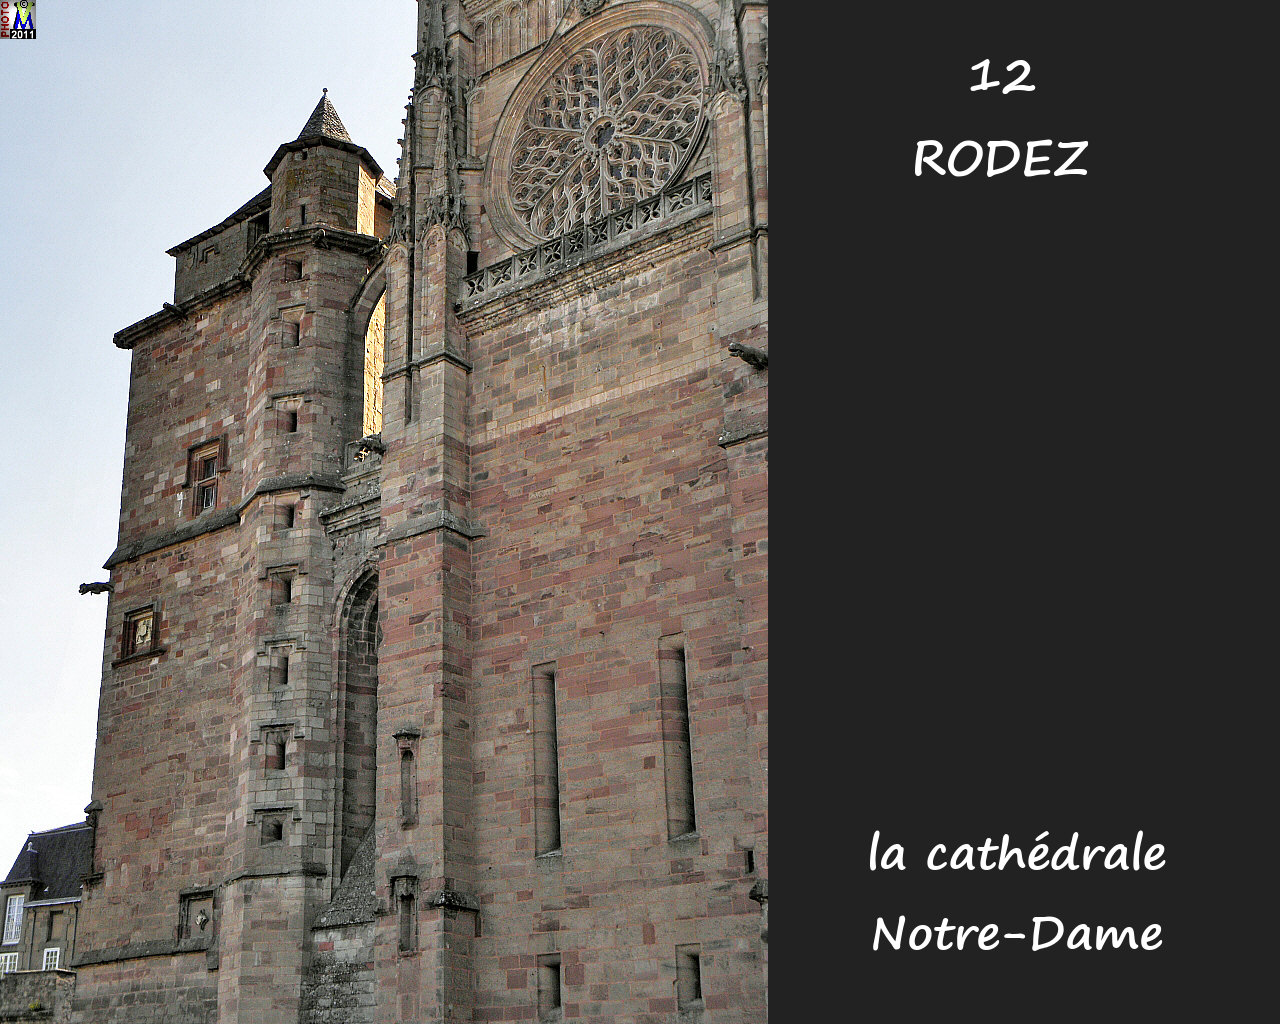 12RODEZ_cathedrale_112.jpg